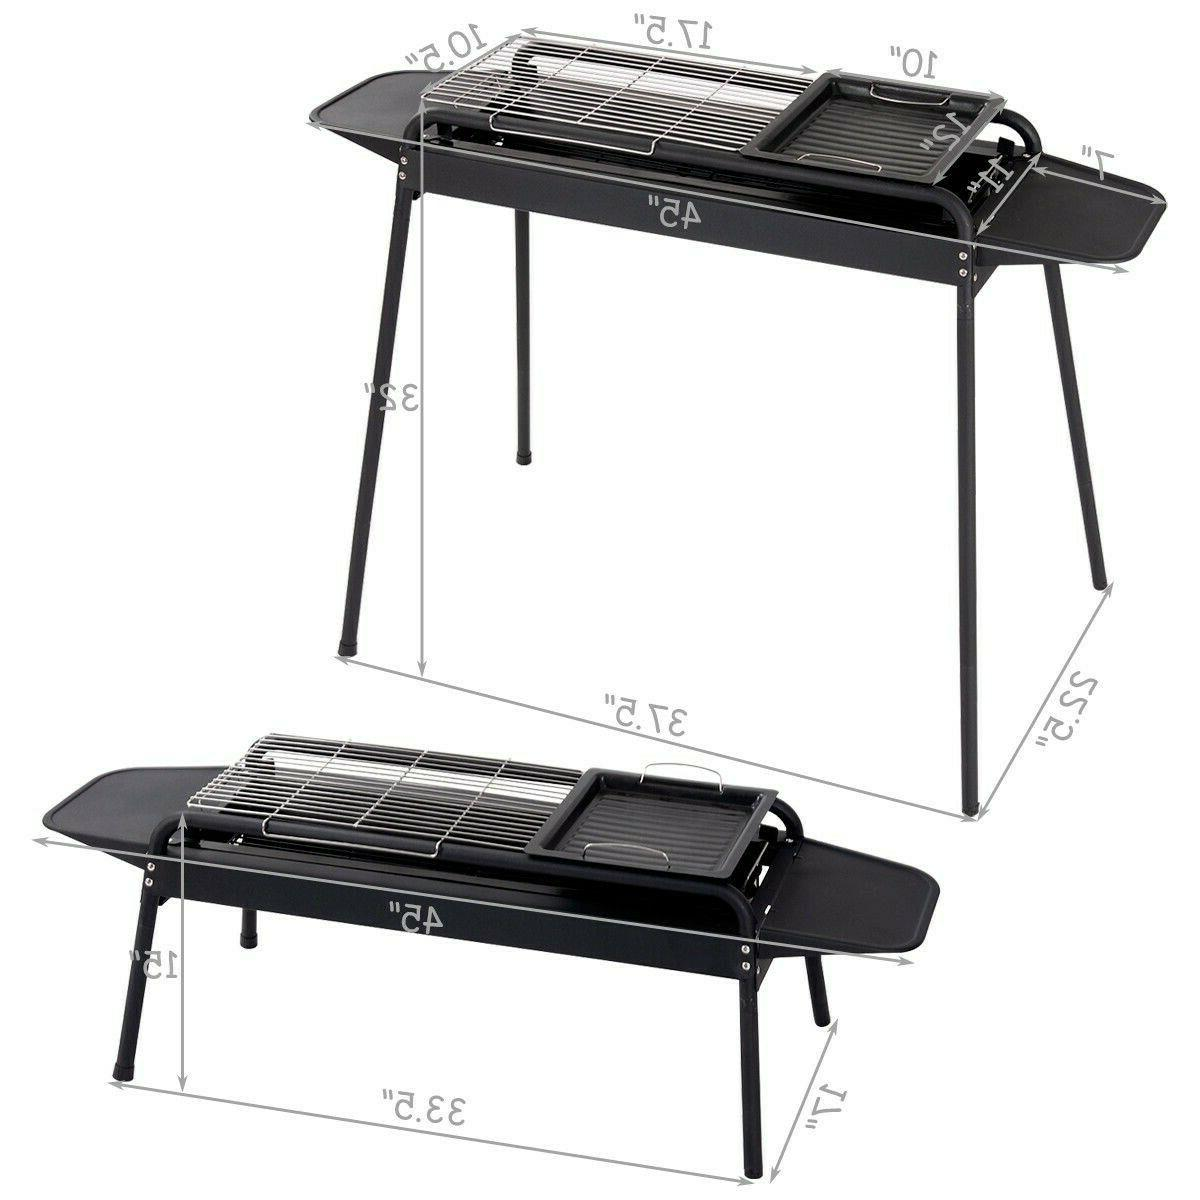 Charcoal Grill BBQ Barbecue Adjustable